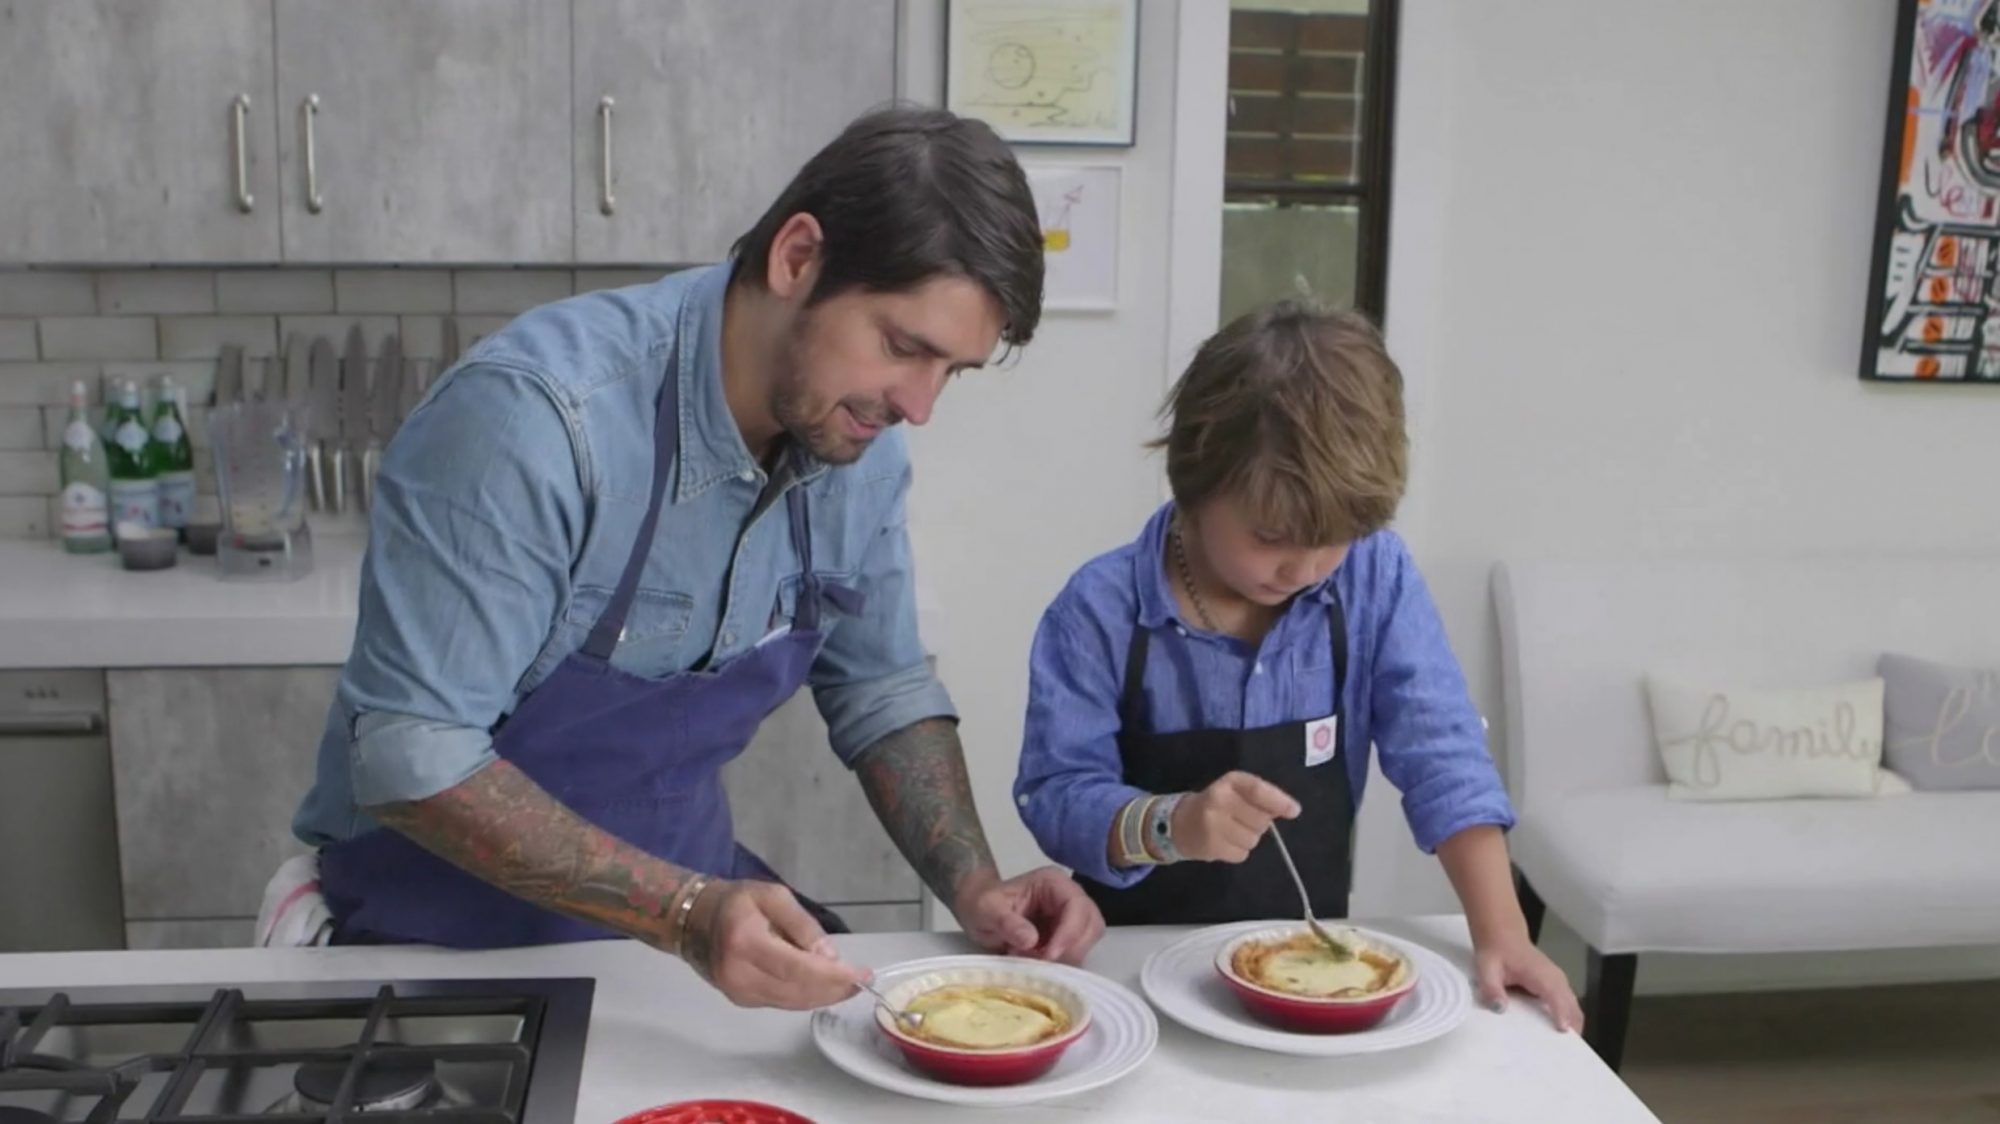 Ludo Lefebvre and Son Show You Their Take on a Classic French Dessert